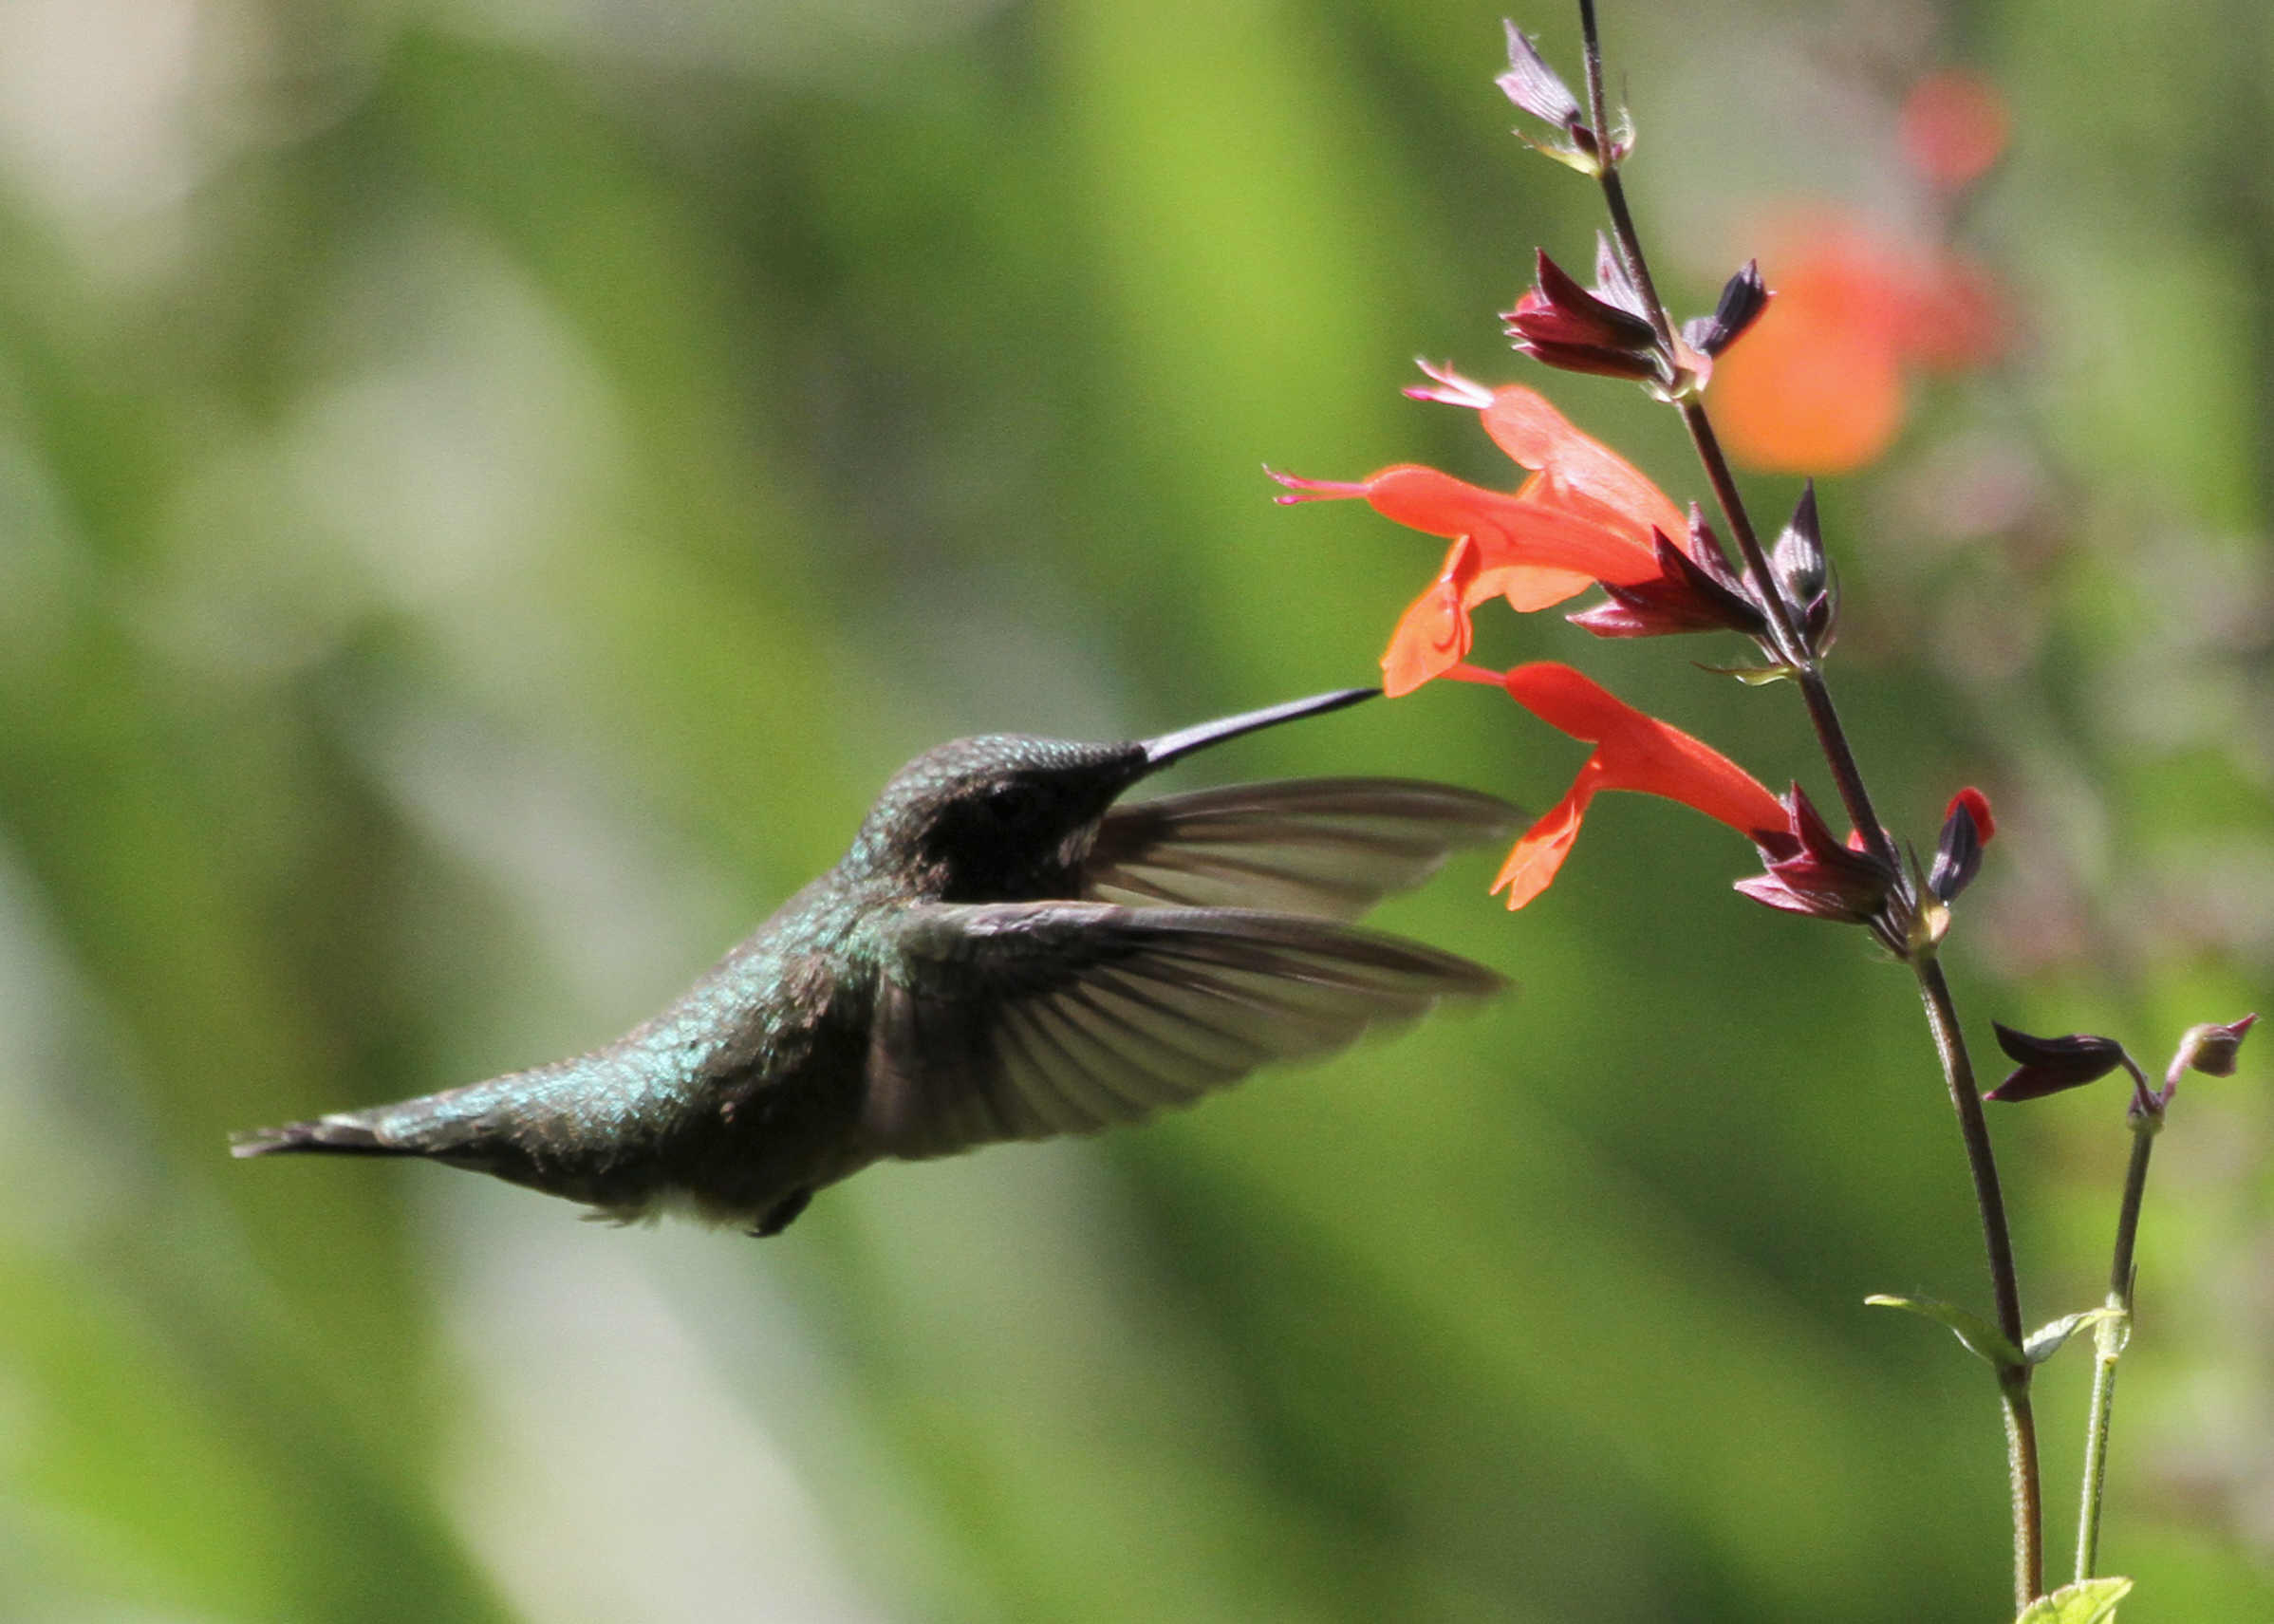 Archivo: Juvenile Masculino Ruby-throated Hummingbird.jpg - La enciclopedia libre